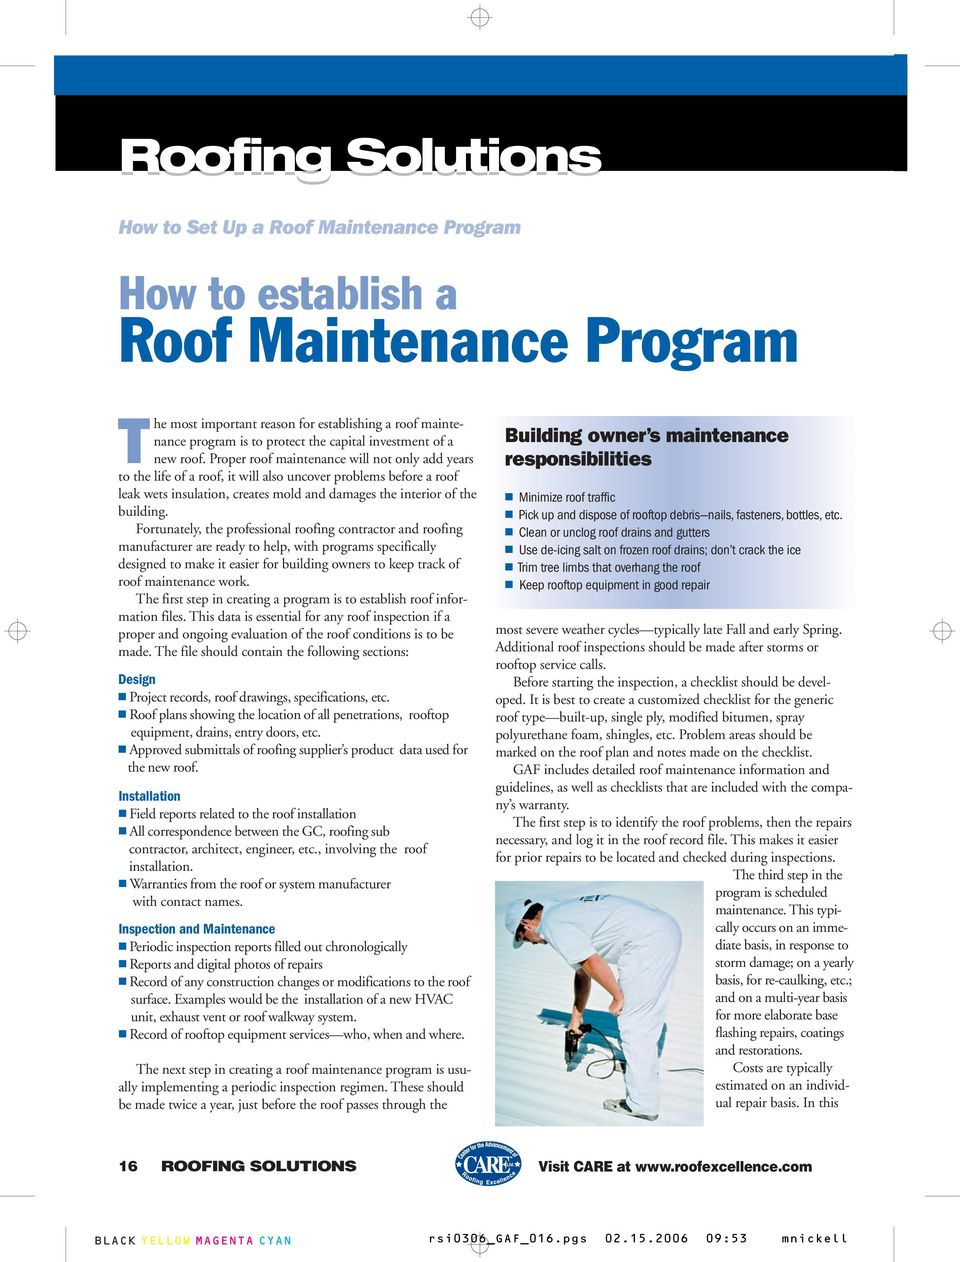 Proper roof maintenance will not only add years to the life of a roof, it will also uncover problems before a roof leak wets insulation, creates mold and damages the interior of the building.